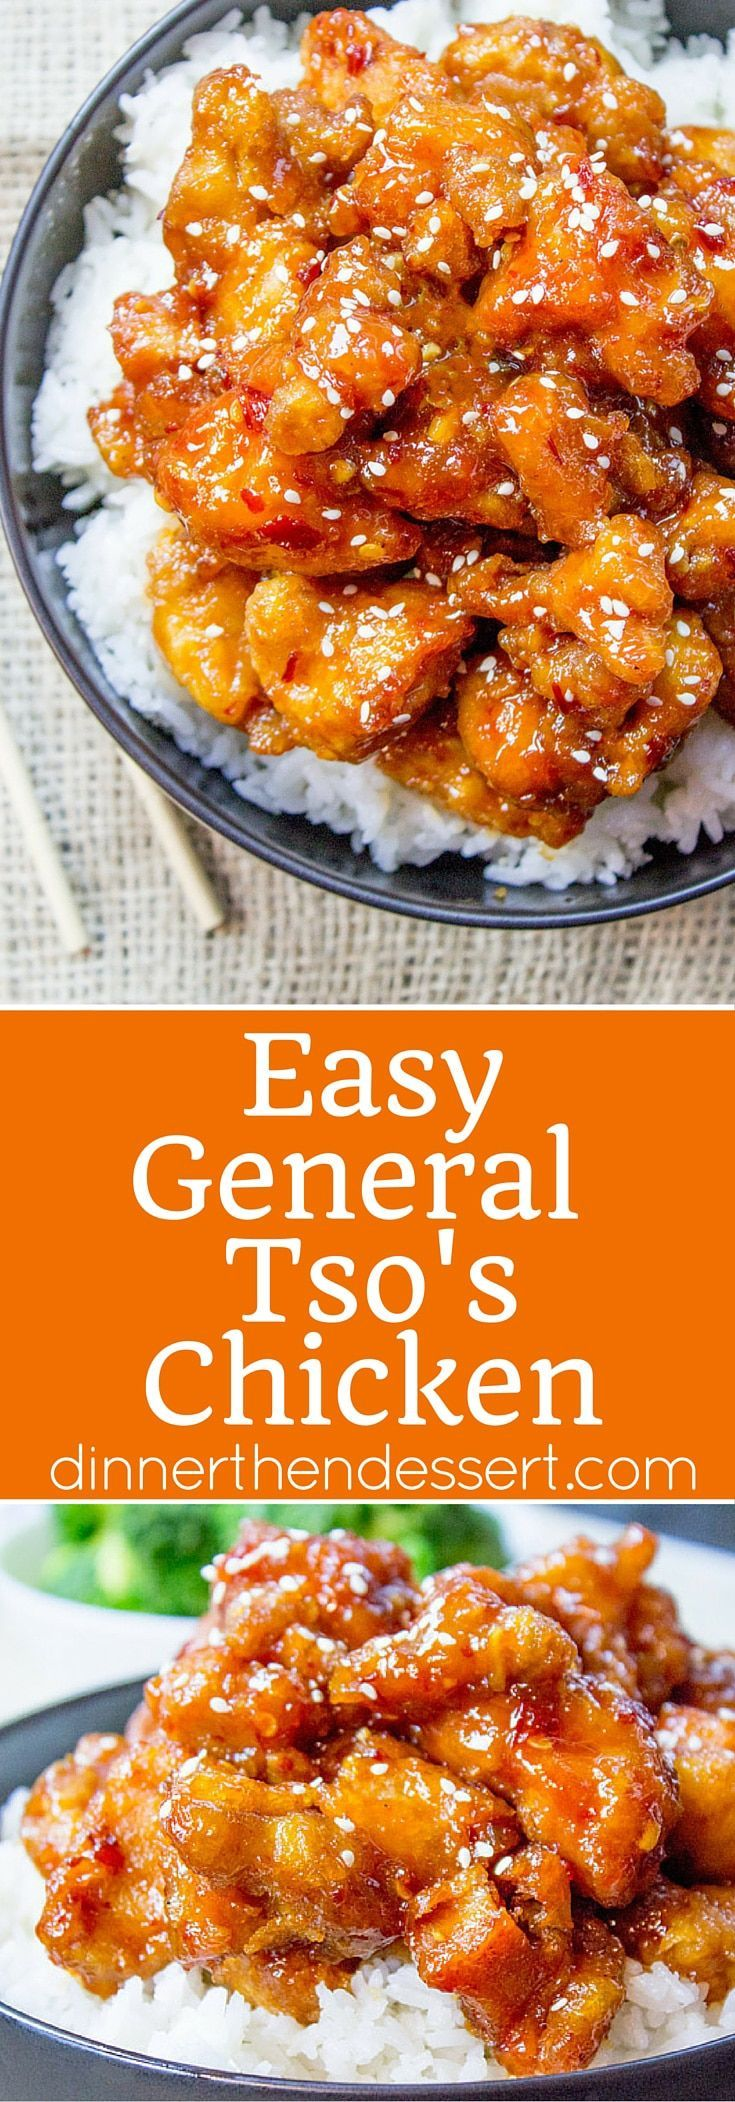 General Tso's Chicken is a favorite Chinese food takeout choice that is sweet and slightly spicy with a kick from garlic and ginger. #ChineseFoodRecipes